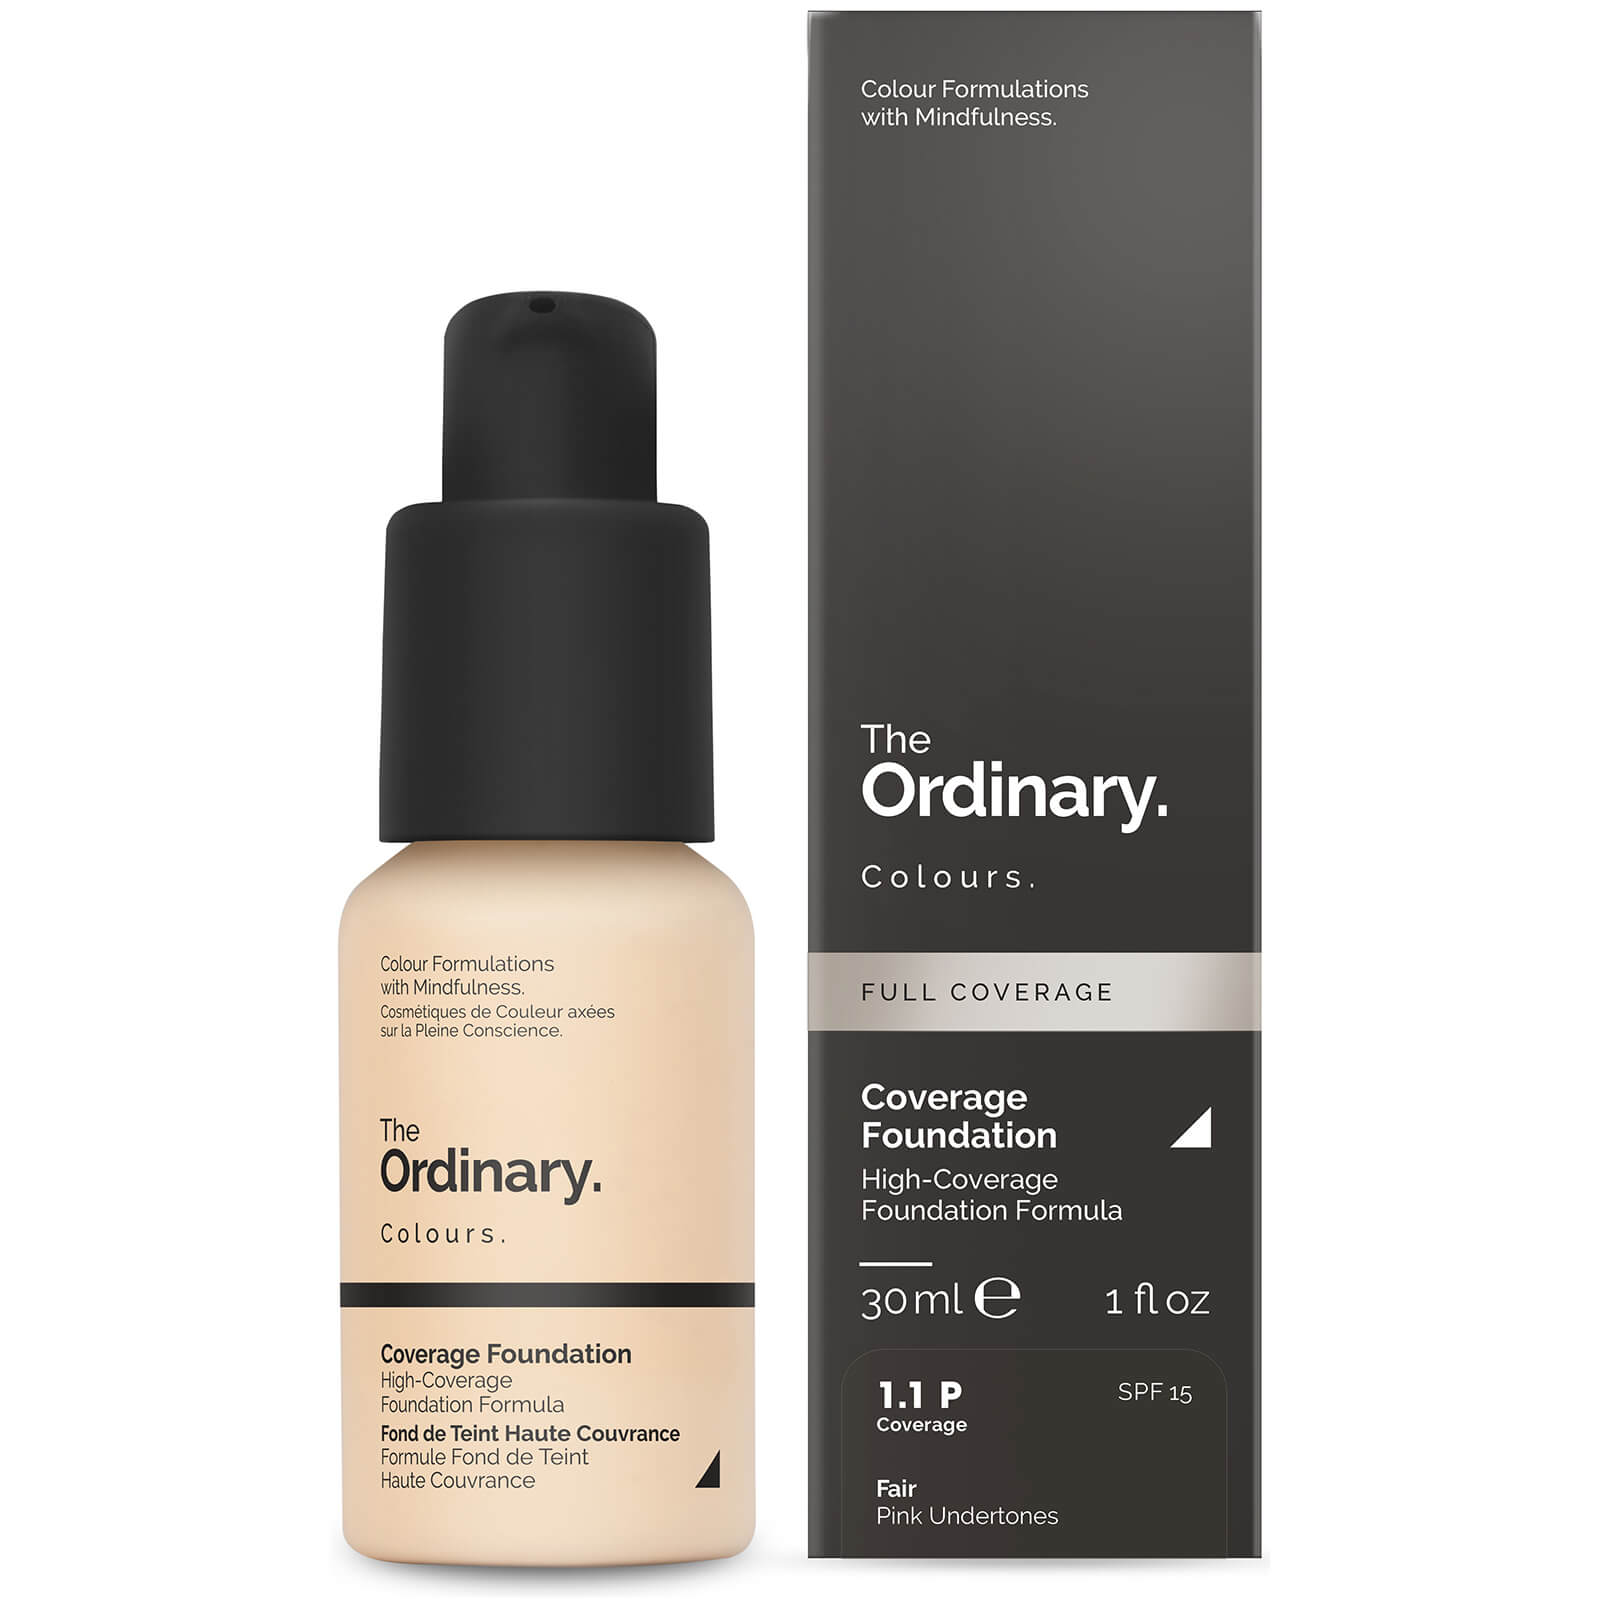 The Ordinary Coverage Foundation with SPF 15 by The Ordinary Colours 30ml (Various Shades) - 1.1P